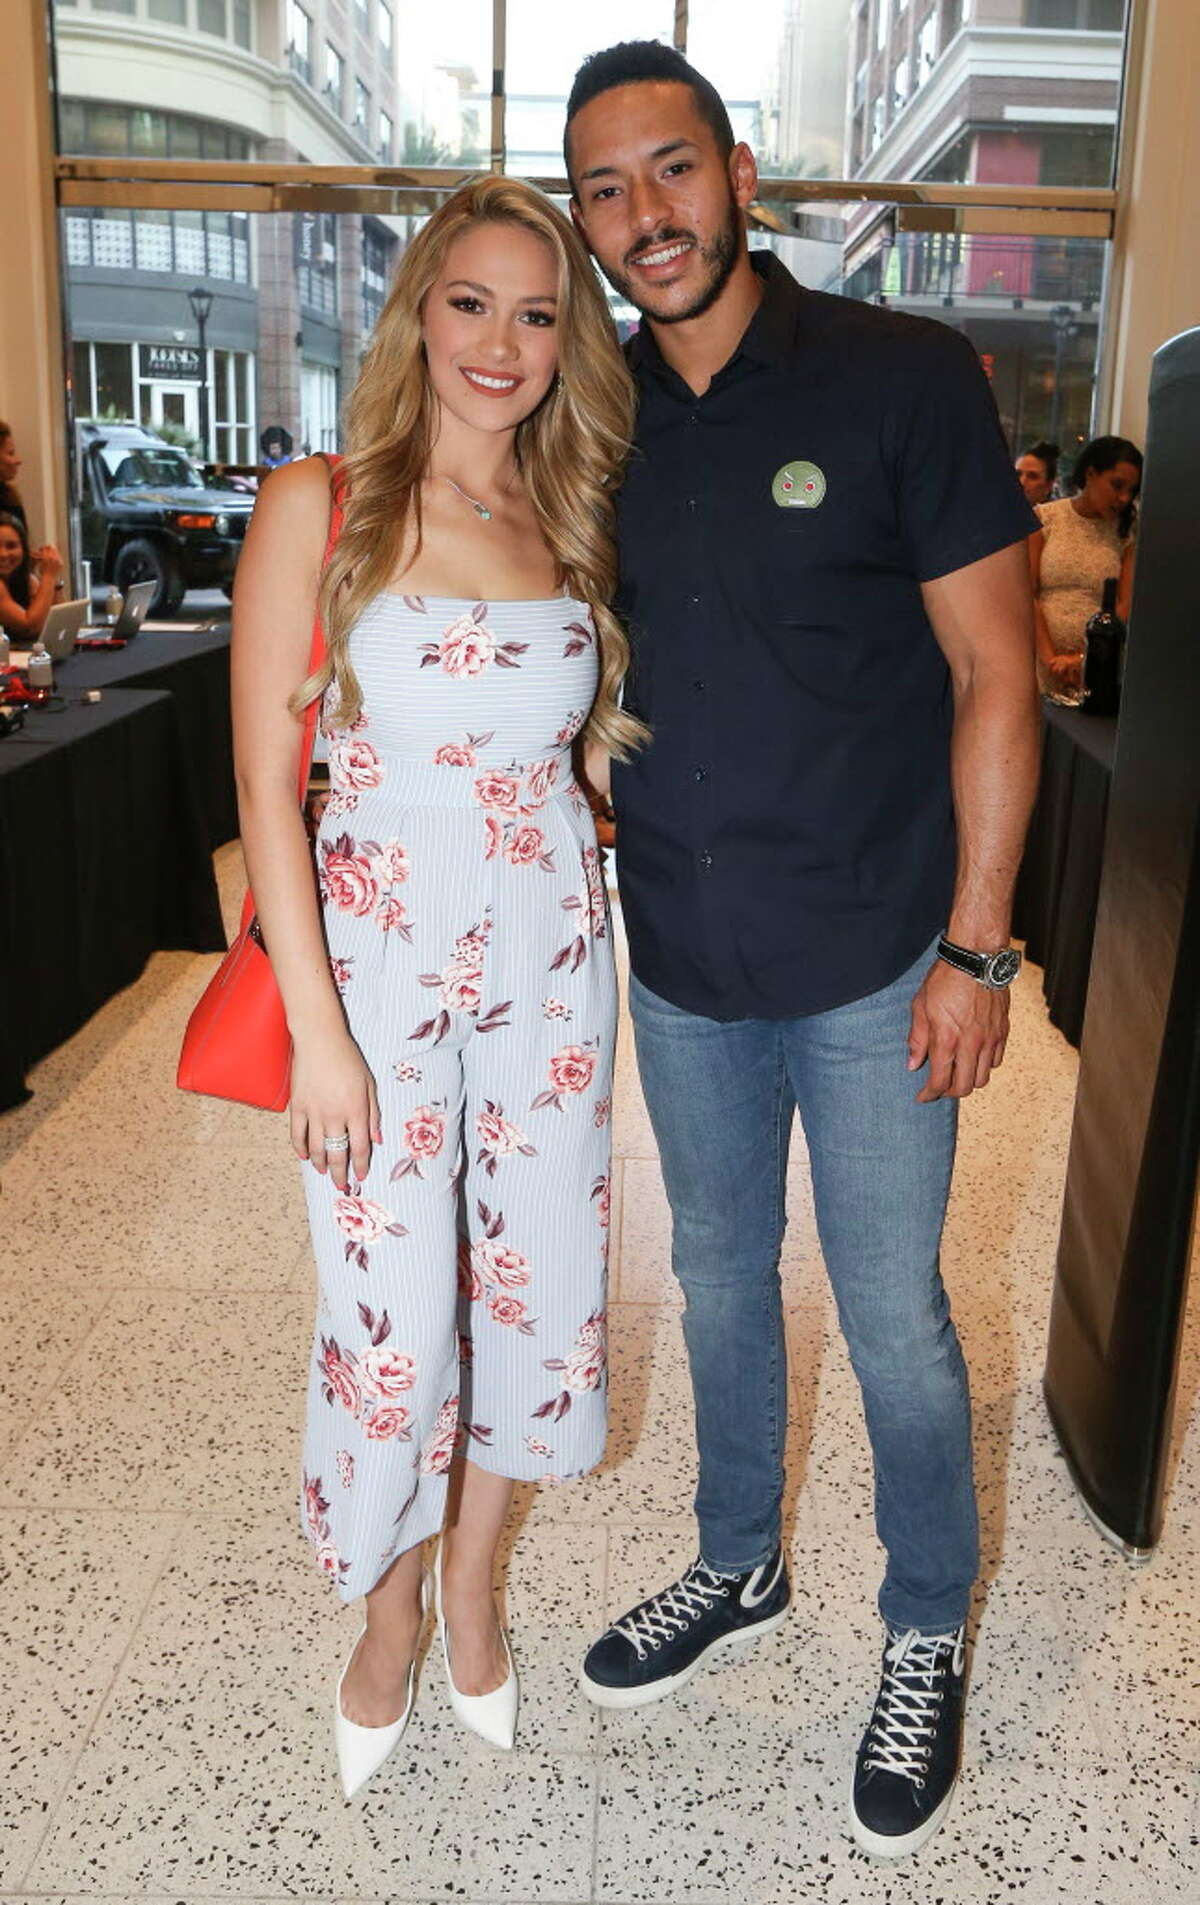 """Ex-Laredo beauty queen Daniella Rodriguez is set to marry Houston Astros outfielder Carlos Correa in December 2019. Houston Astros player Carlos Correa and fiancé Daniella Rodriguez pose for a photograph at """"Team Up for Kids and K9s"""" benefit. >>> Click through to meet Texas USA 2016 Daniella Rodriguez."""